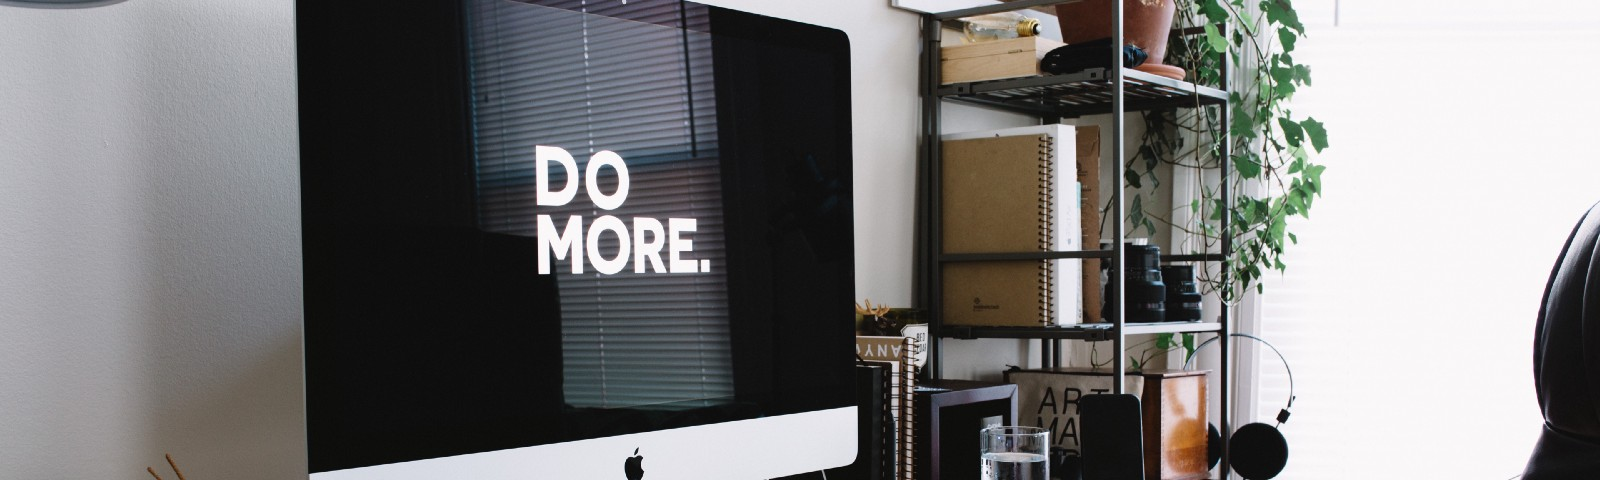 "A large screen on a desk reads ""Do More"""